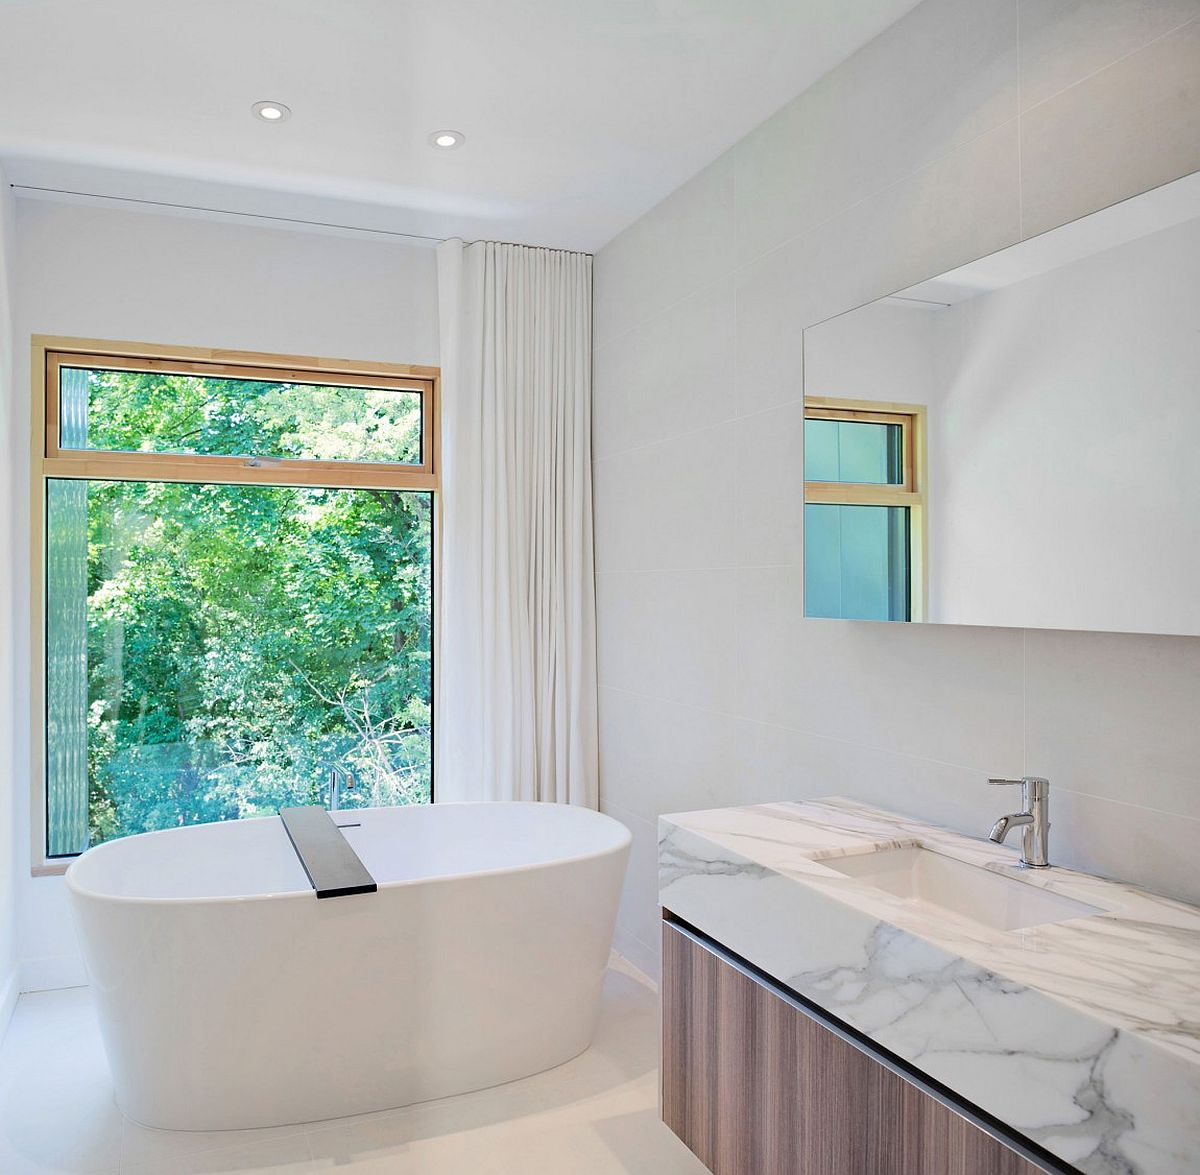 Standalone bathtub and vanity with wooden base and marble top inside the contemporary bathroom